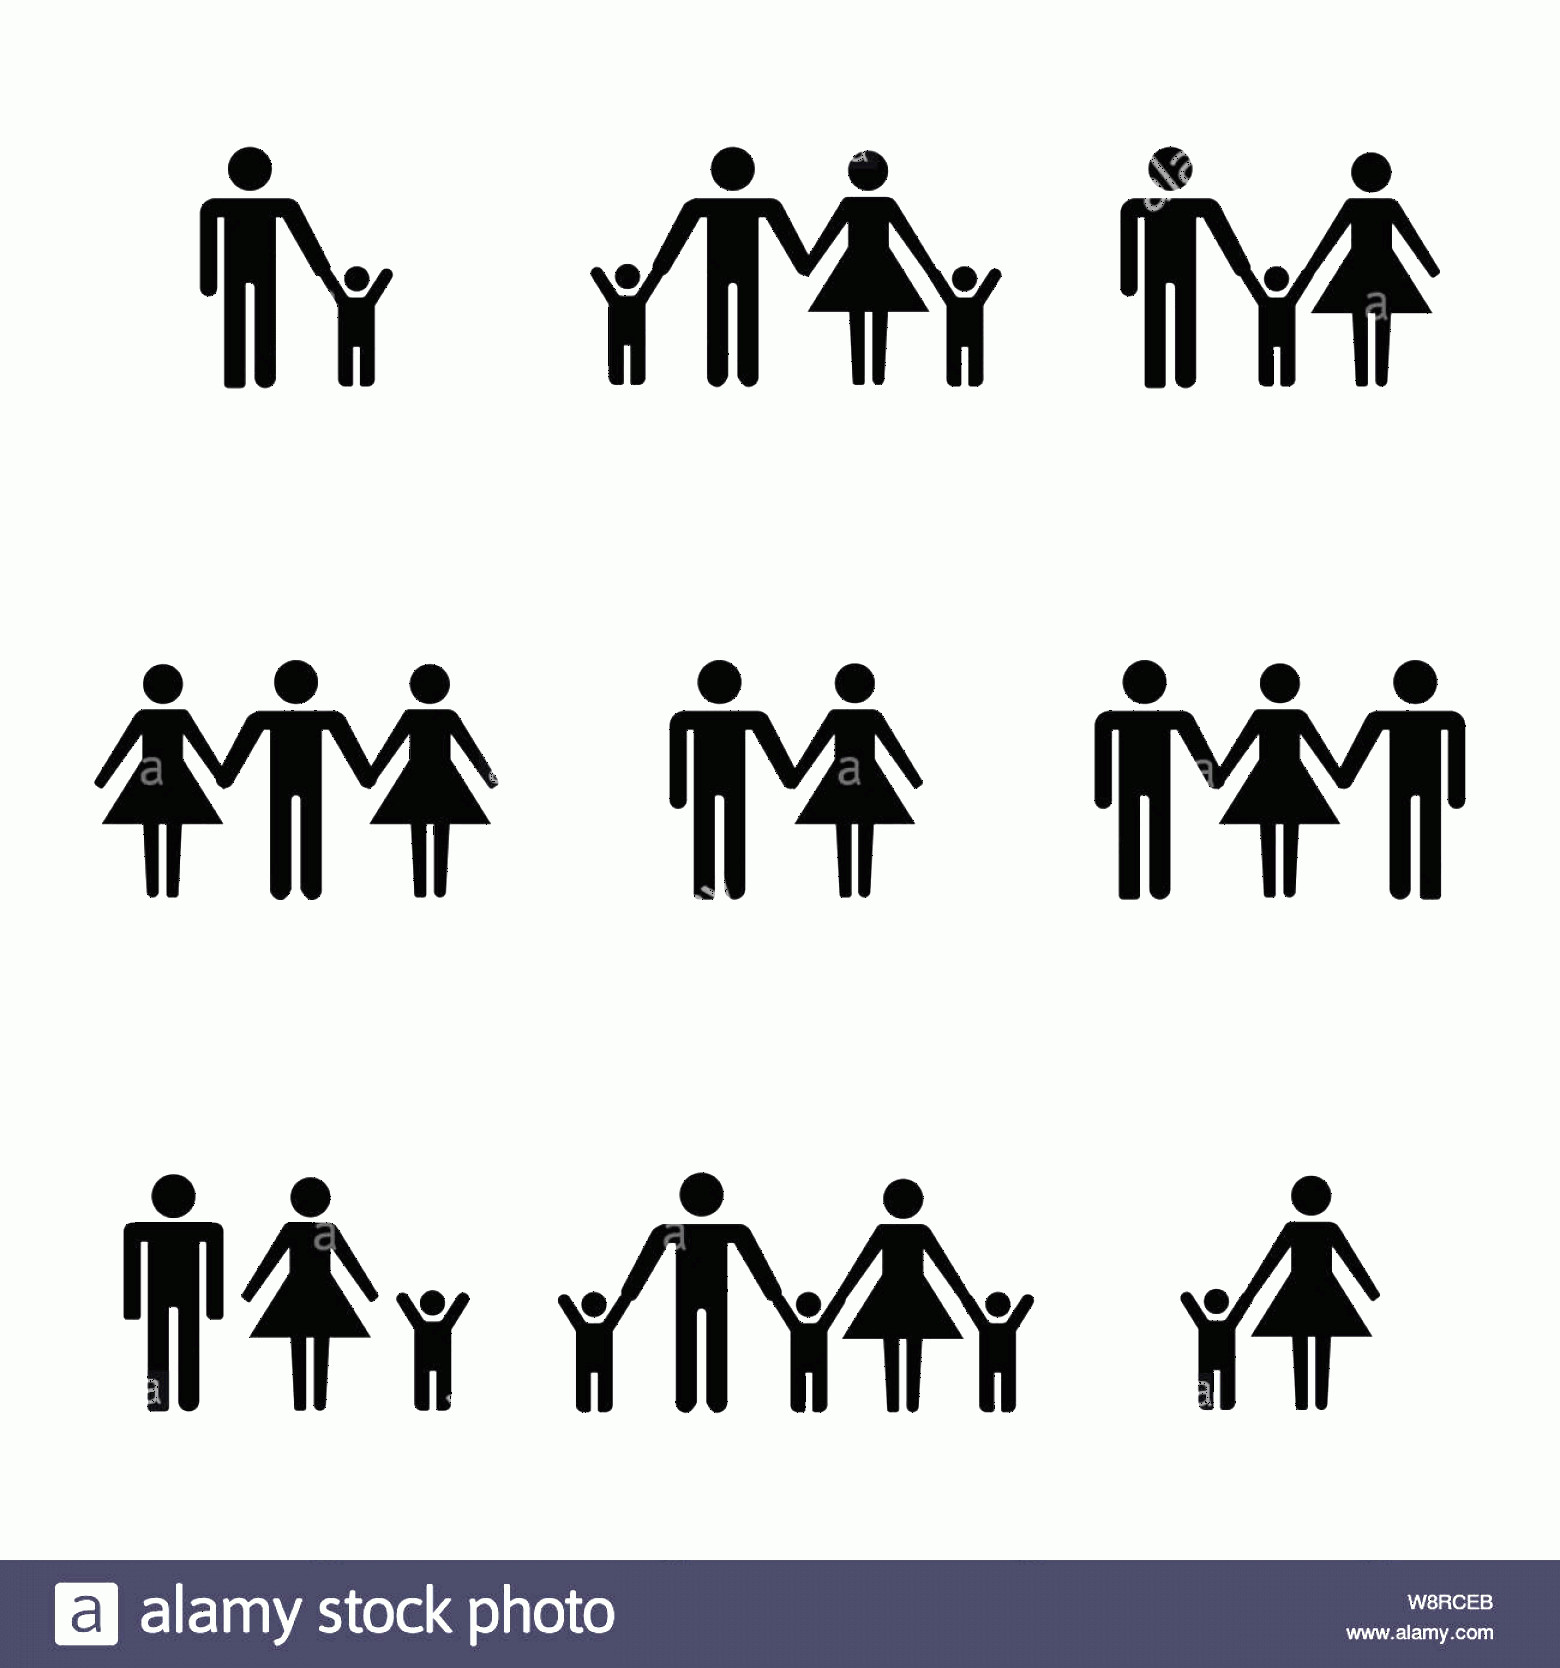 Stick Family Vector Art: Set Of Family Stick Figures Black Womans And Mans Silhouettes On A White Background Icons People Vector Illustration Image